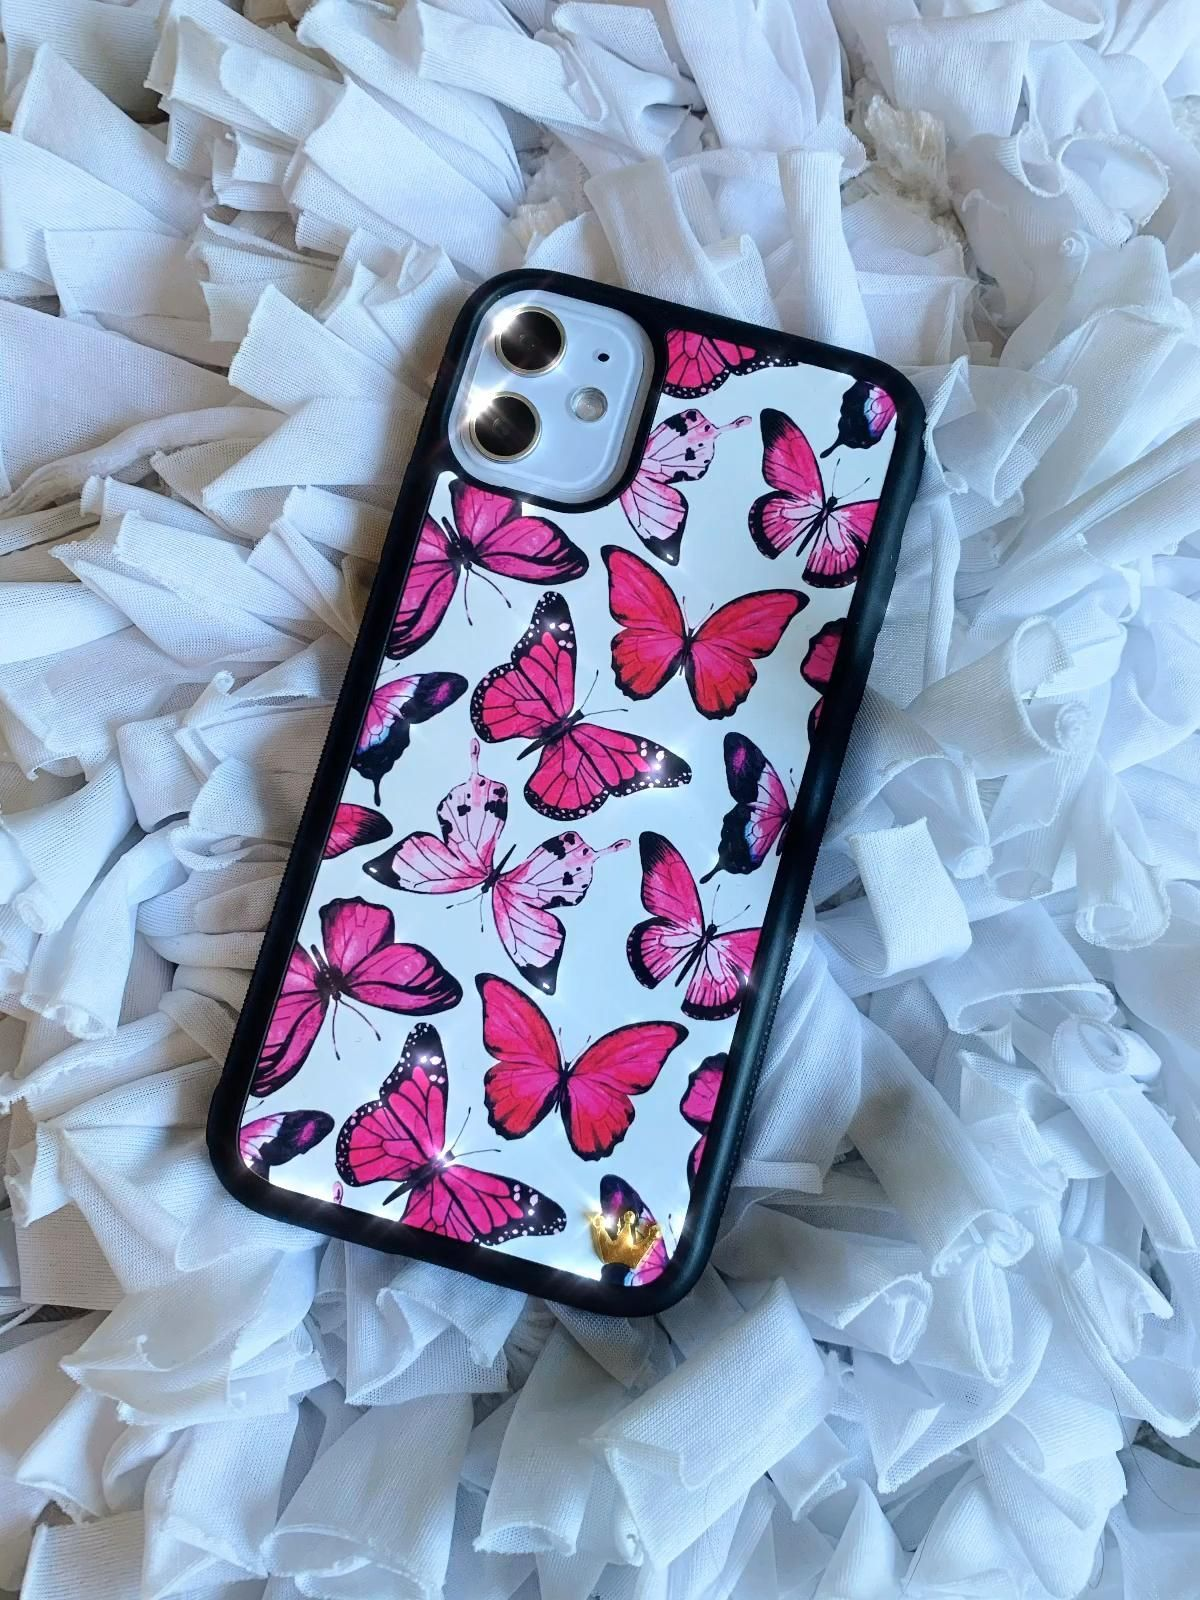 Coming soon pink butterflies in 2020 girly phone cases